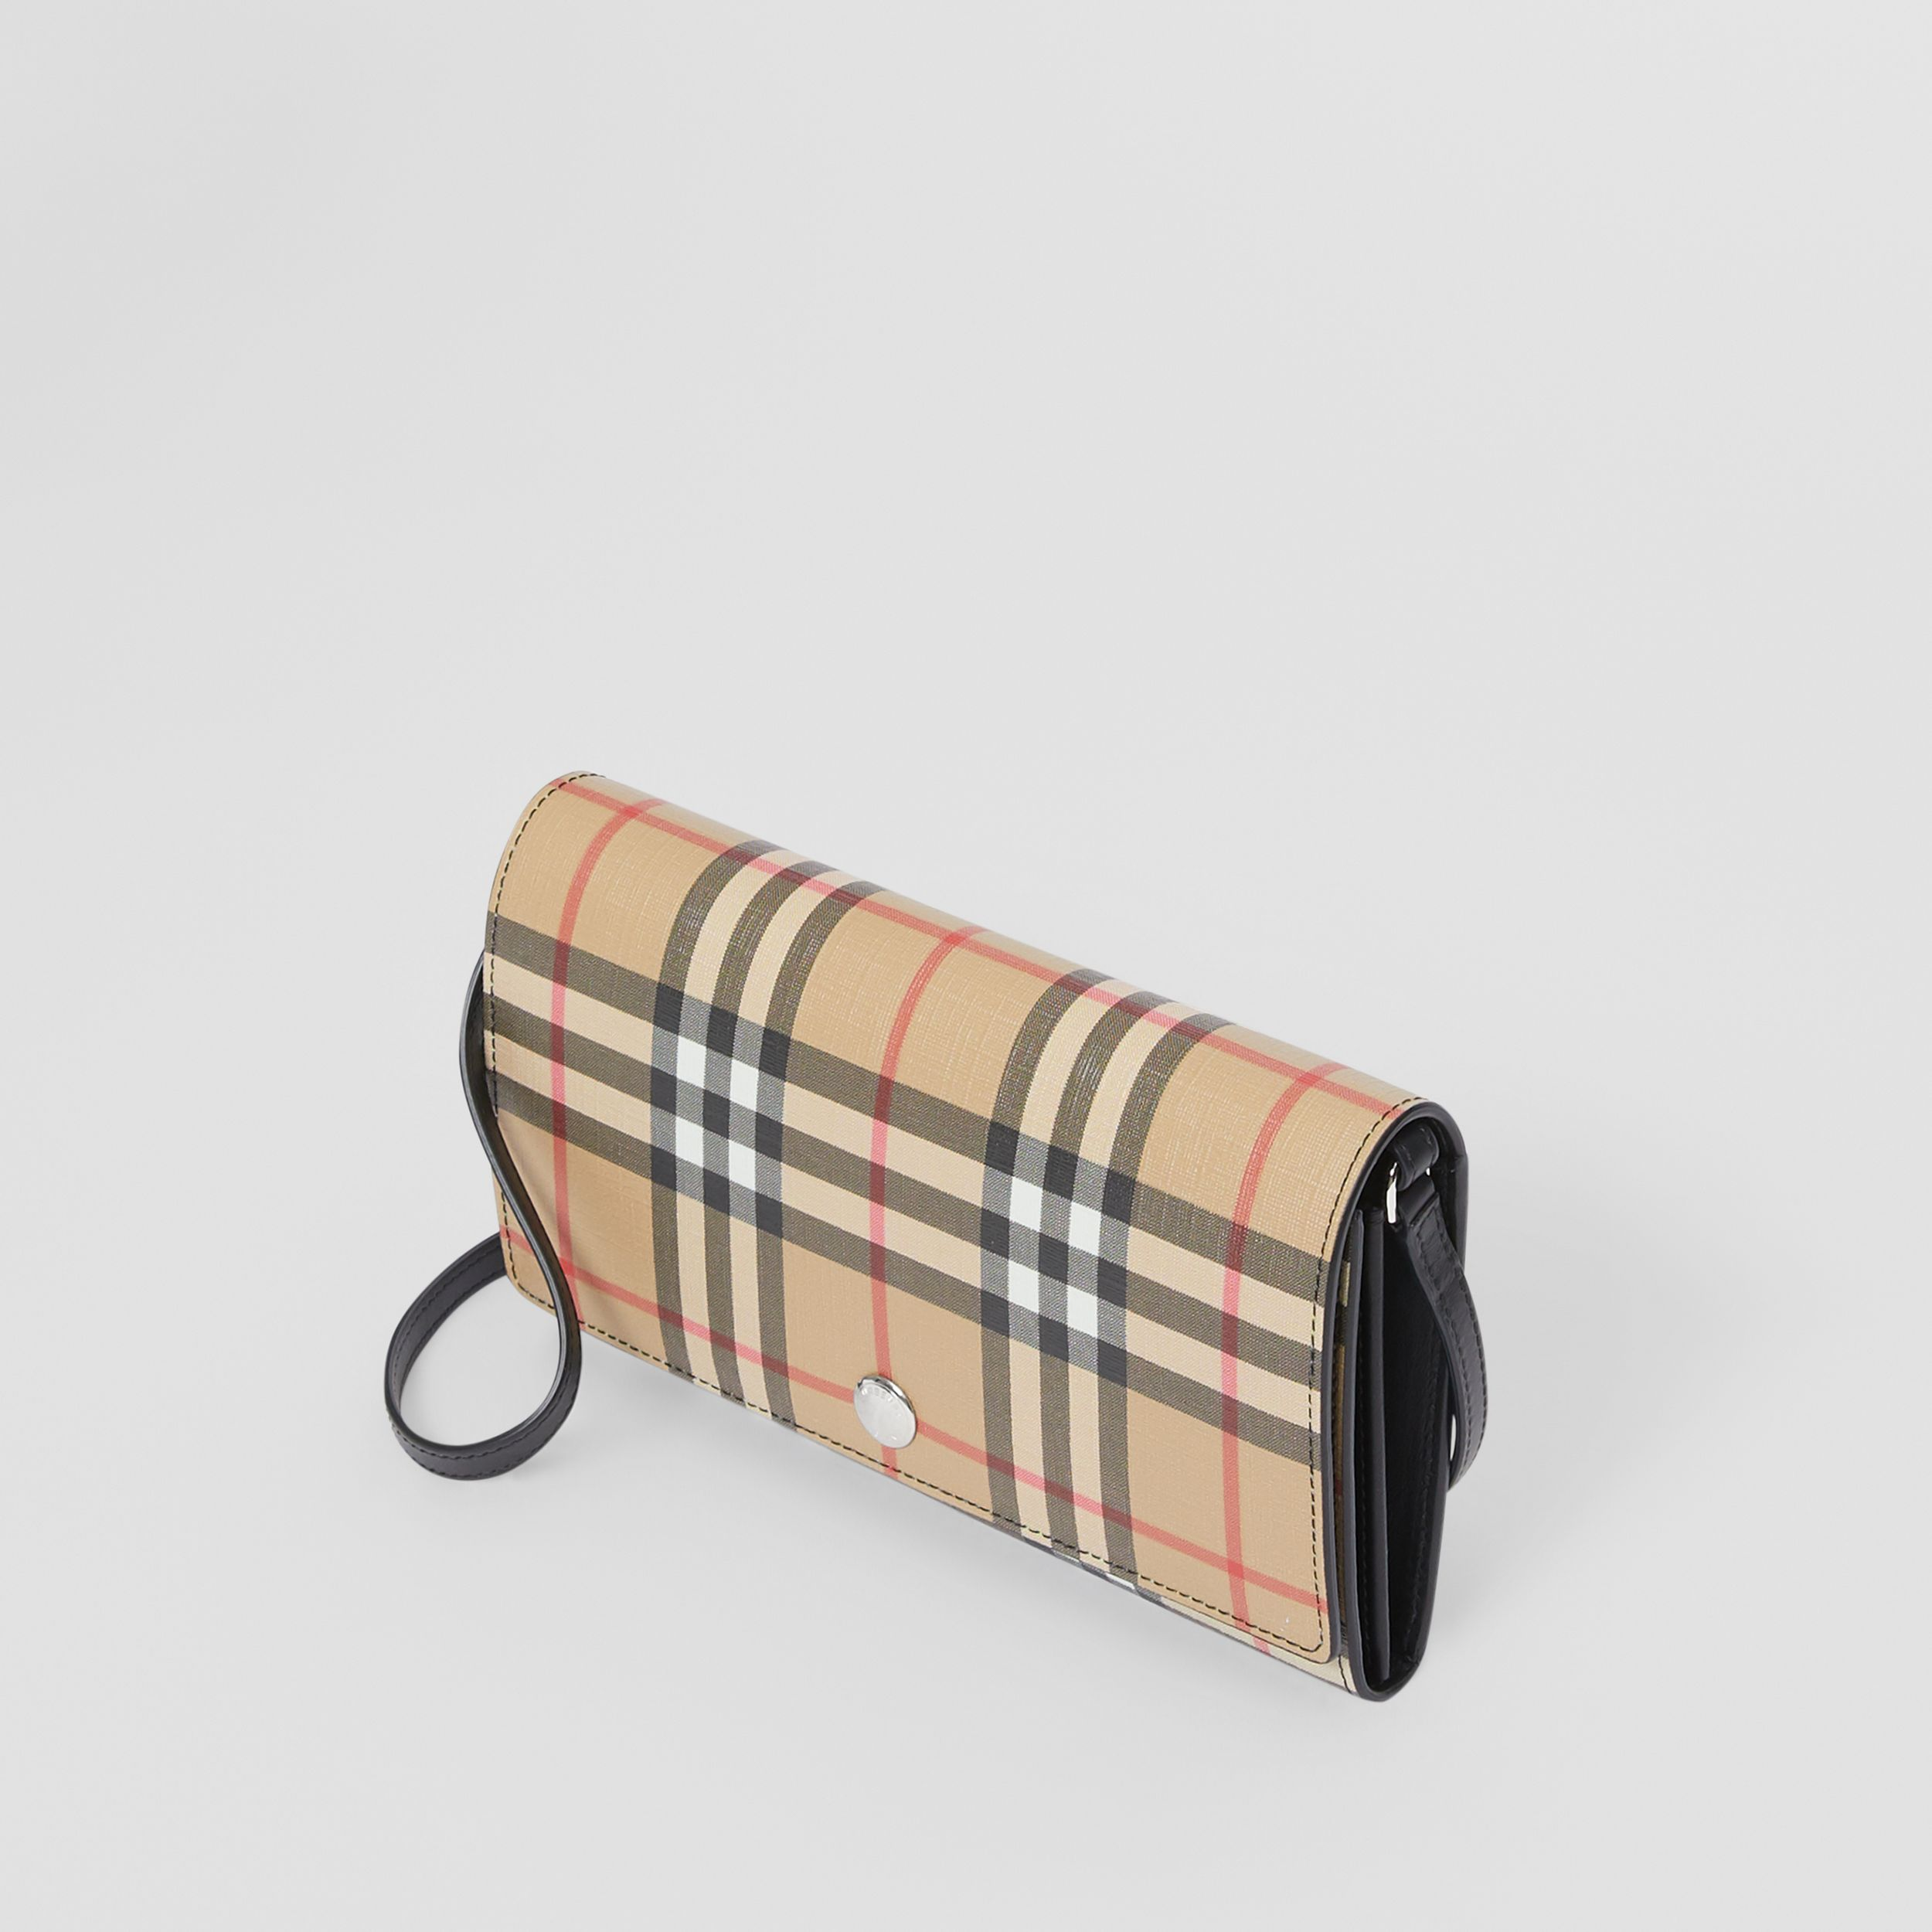 Vintage Check E-canvas Wallet with Detachable Strap in Black - Women | Burberry - 4